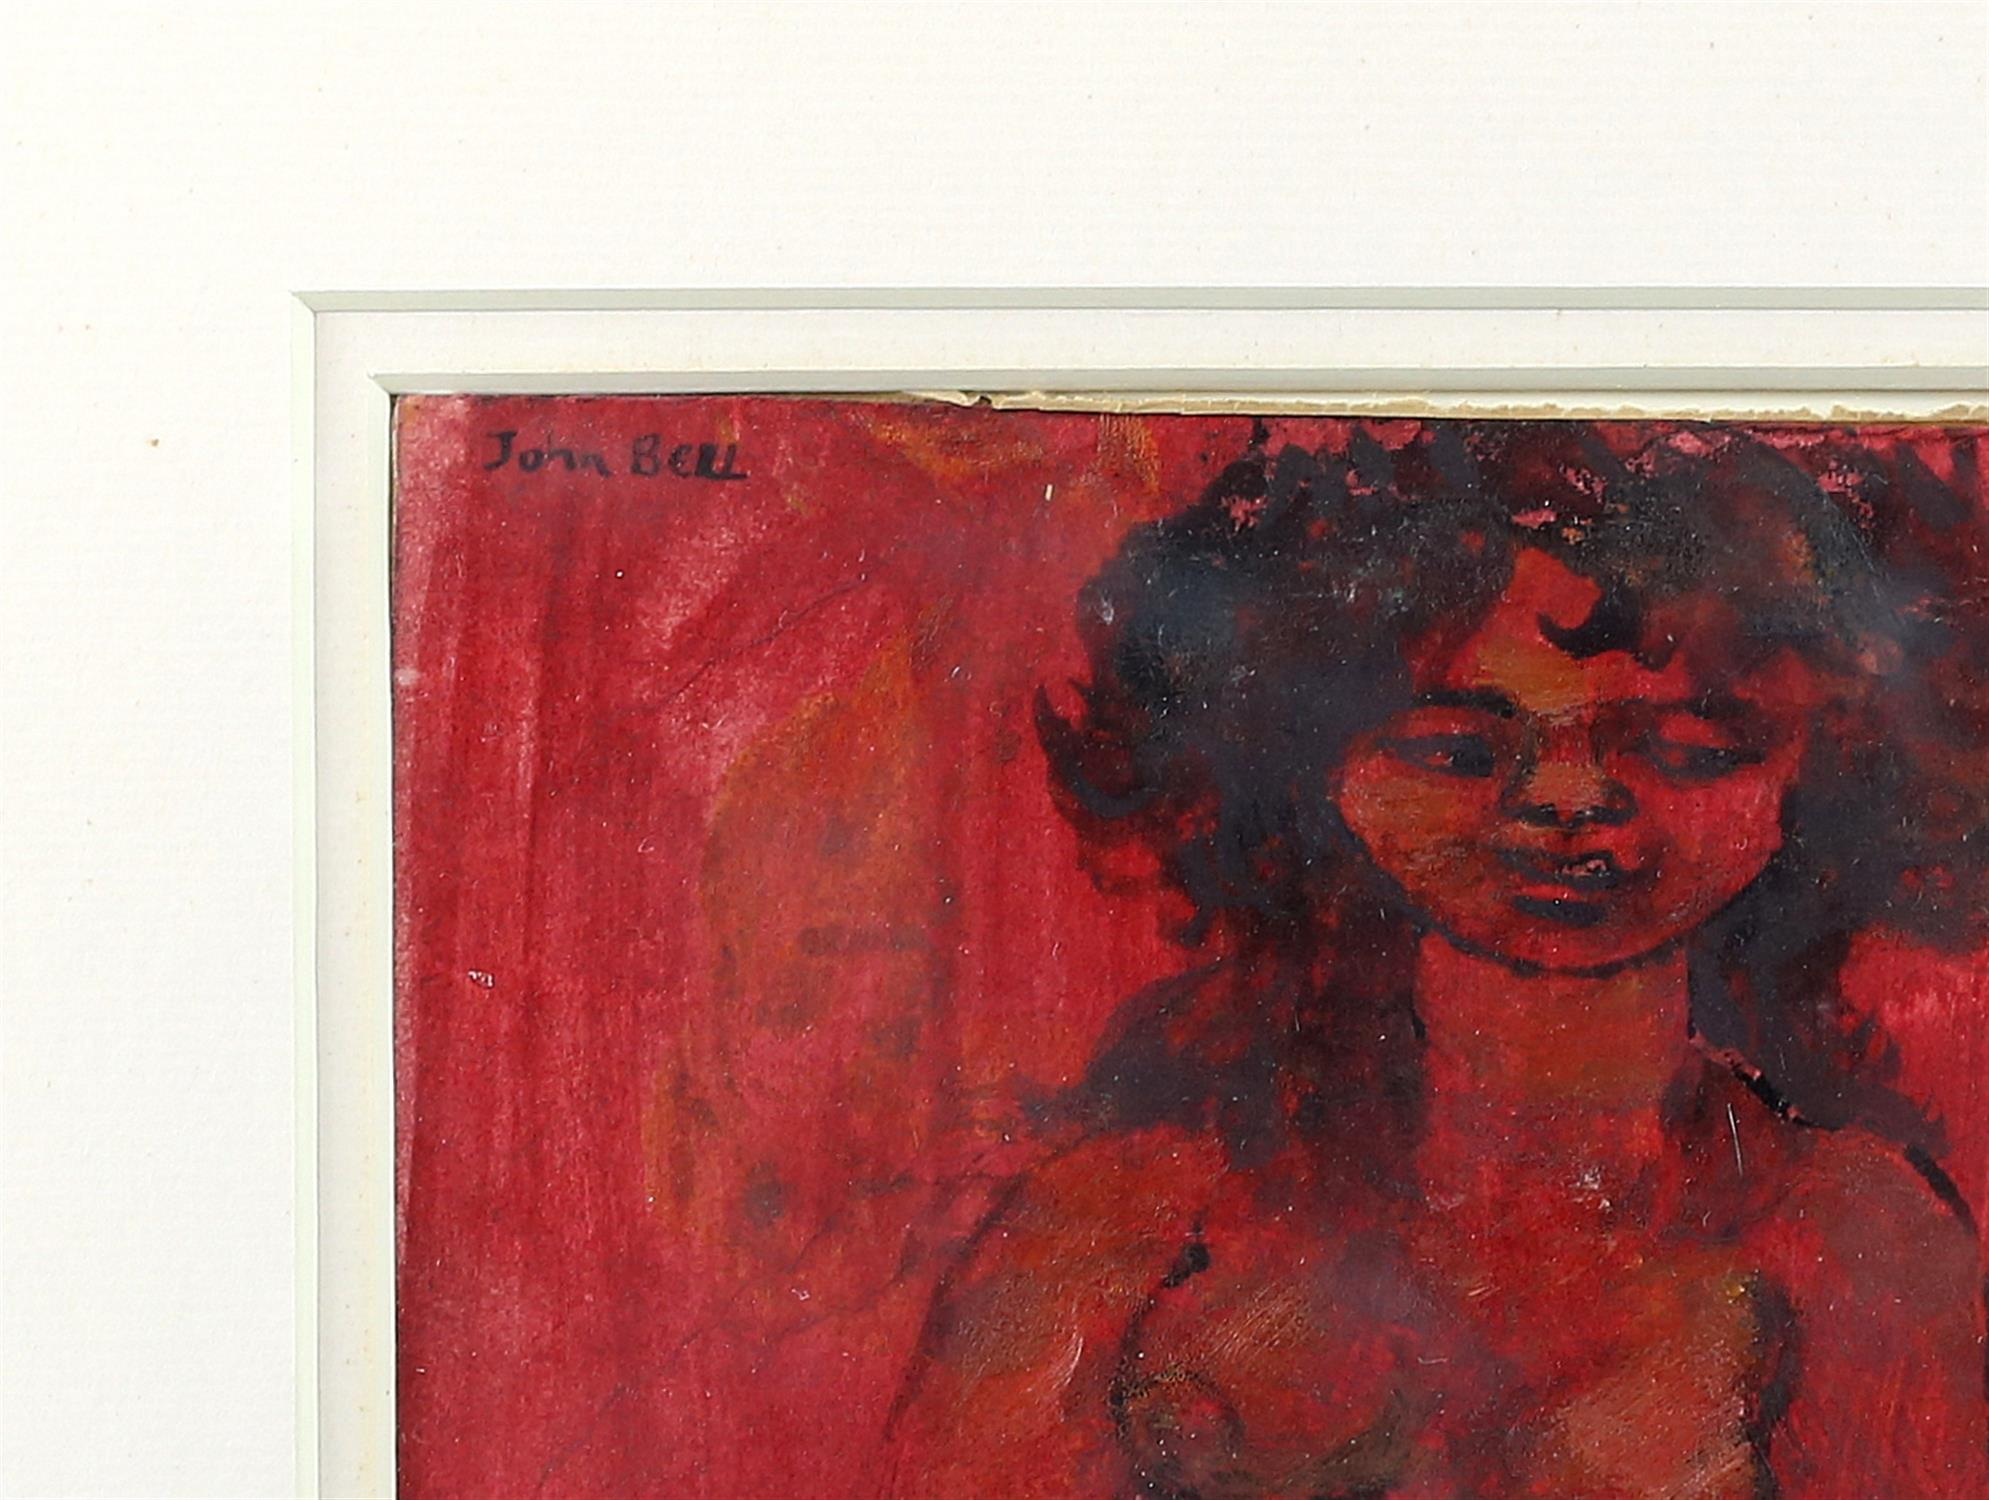 John Bell, nude study. Watercolour and ink on paper. Signed top left. Framed and glazed. - Image 3 of 3